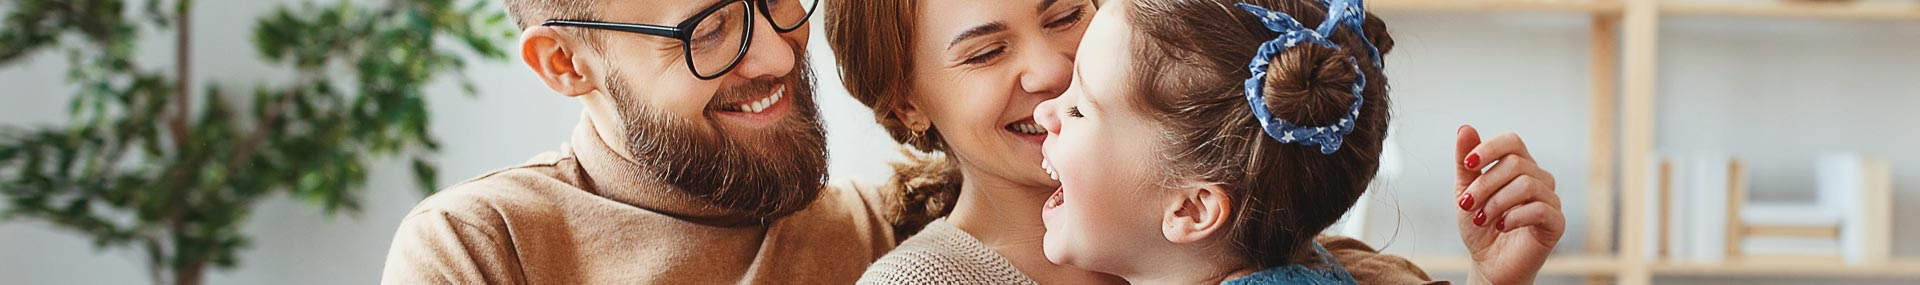 Father, mother and daughter laughing symbolizing a time of life when learning about life insurance is important.